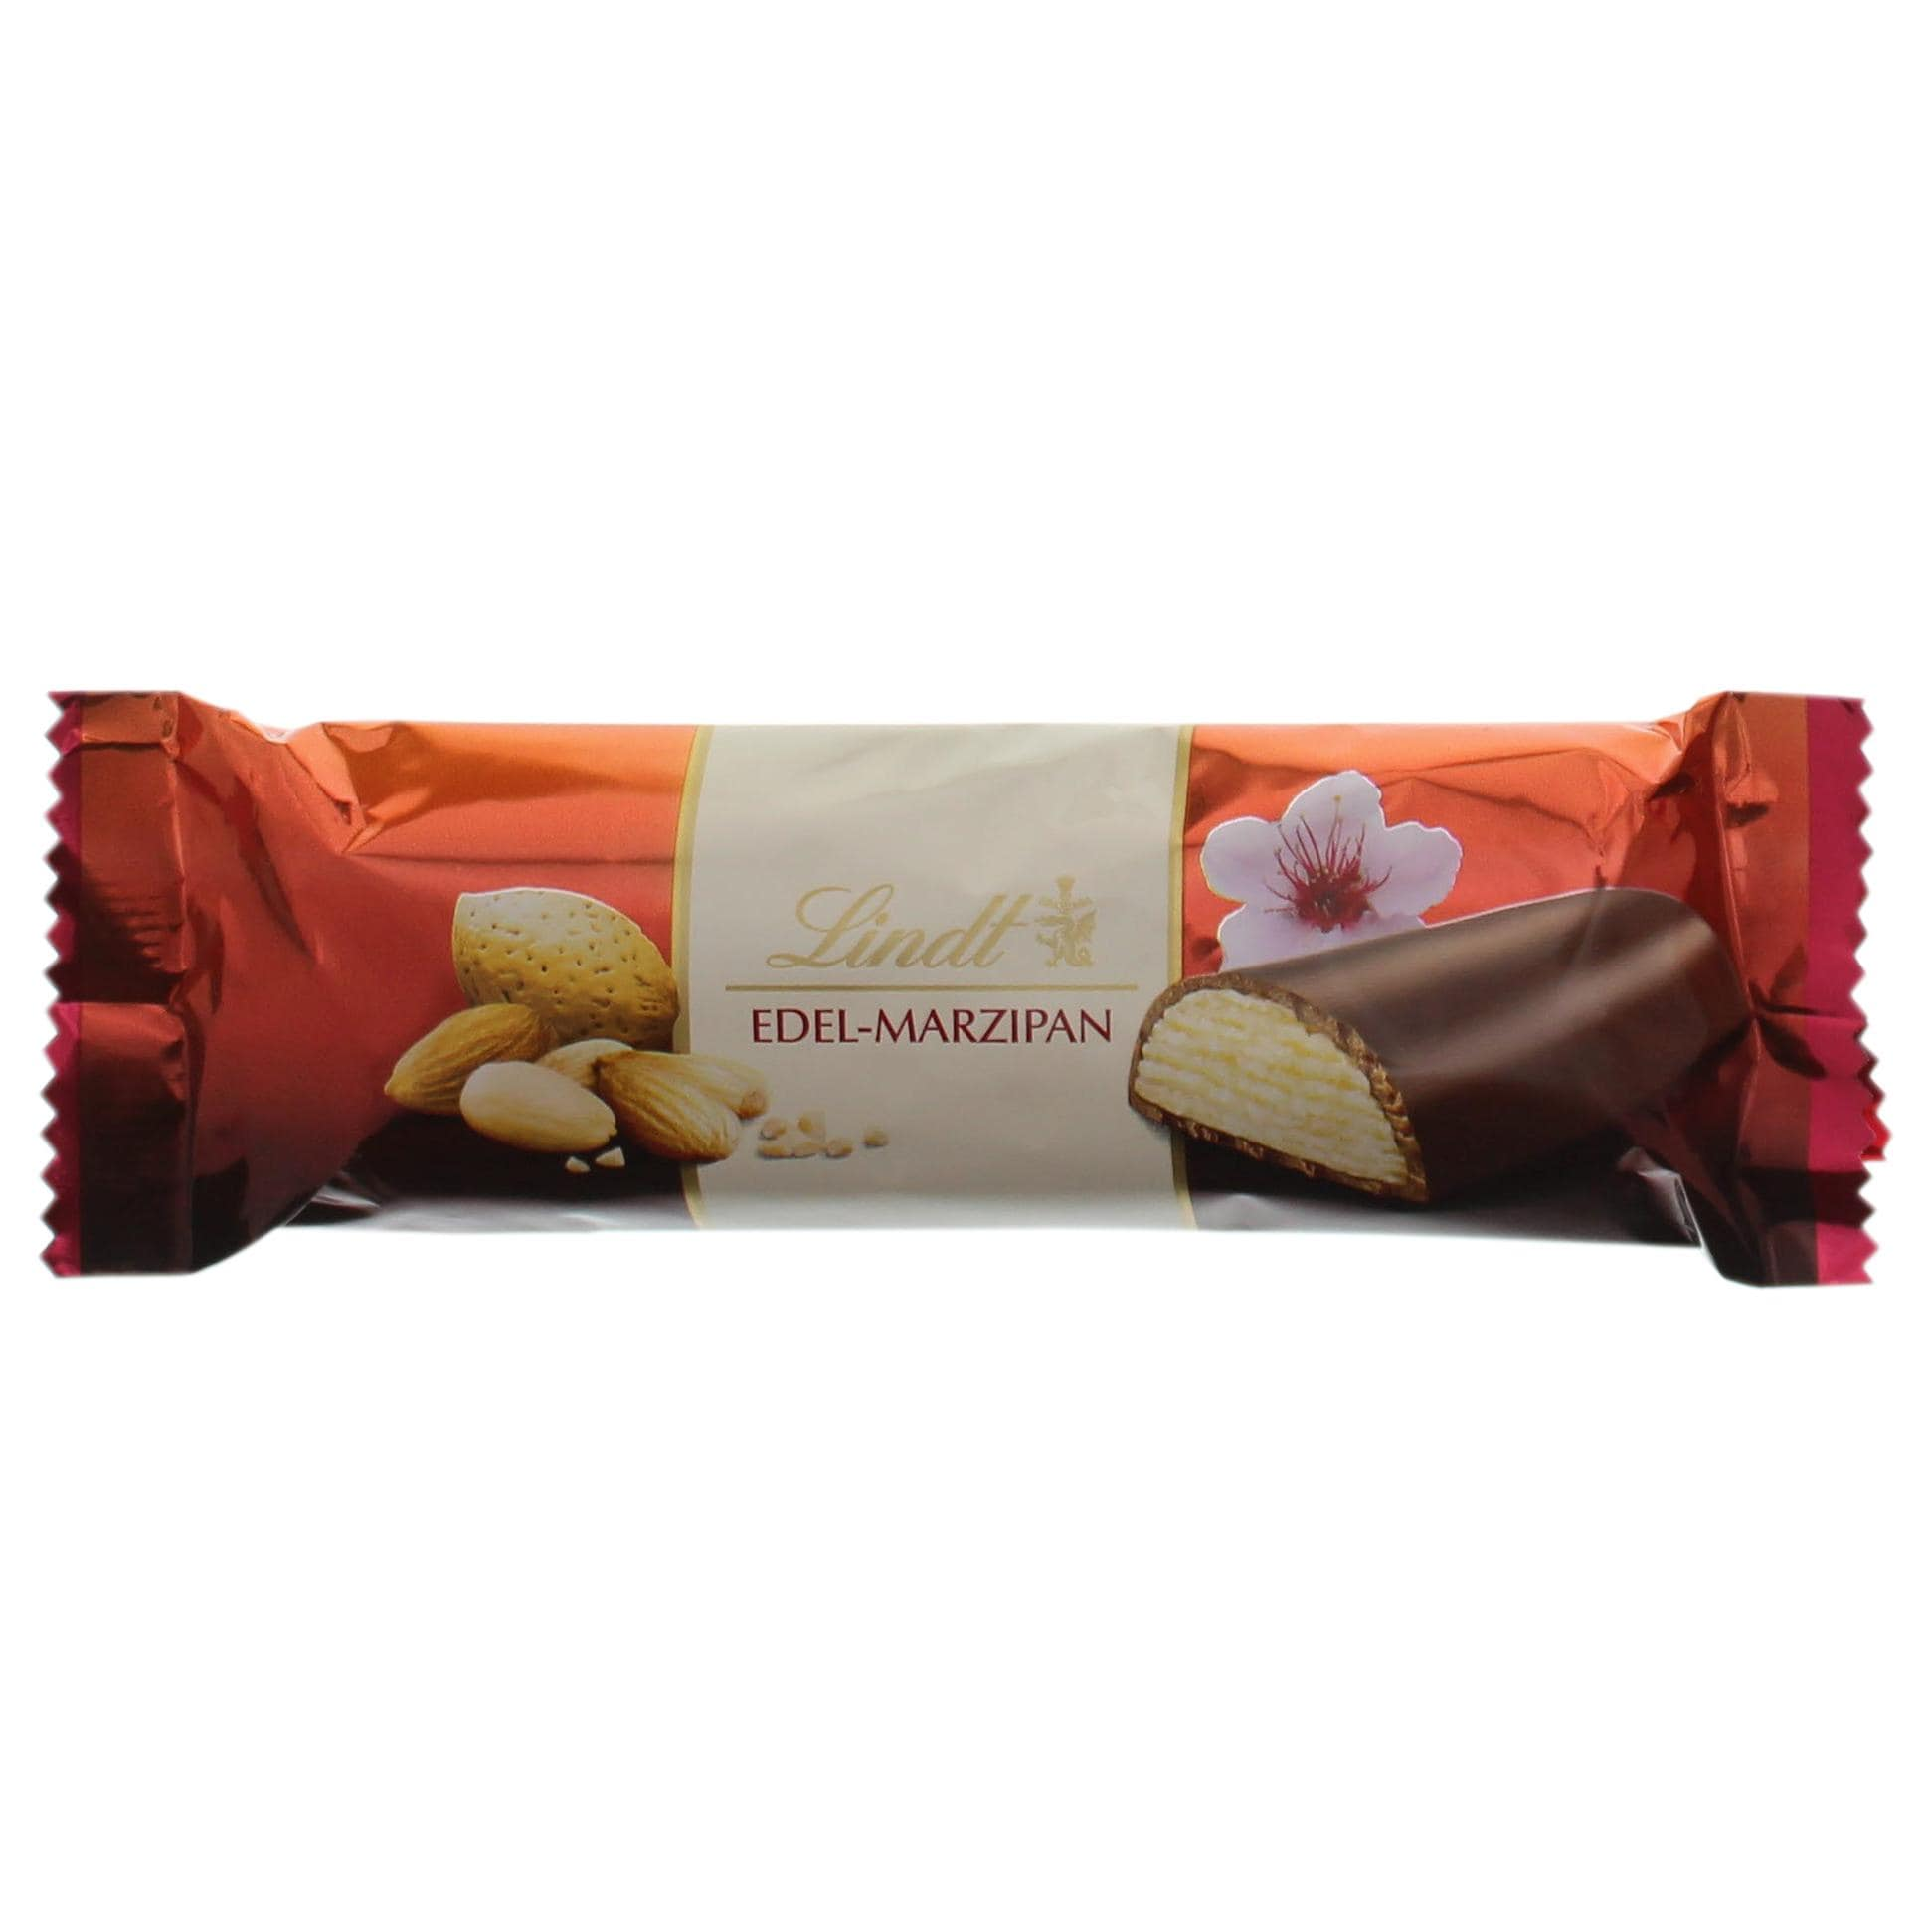 Lindt - Edel Marzipan - Riegel - 100g